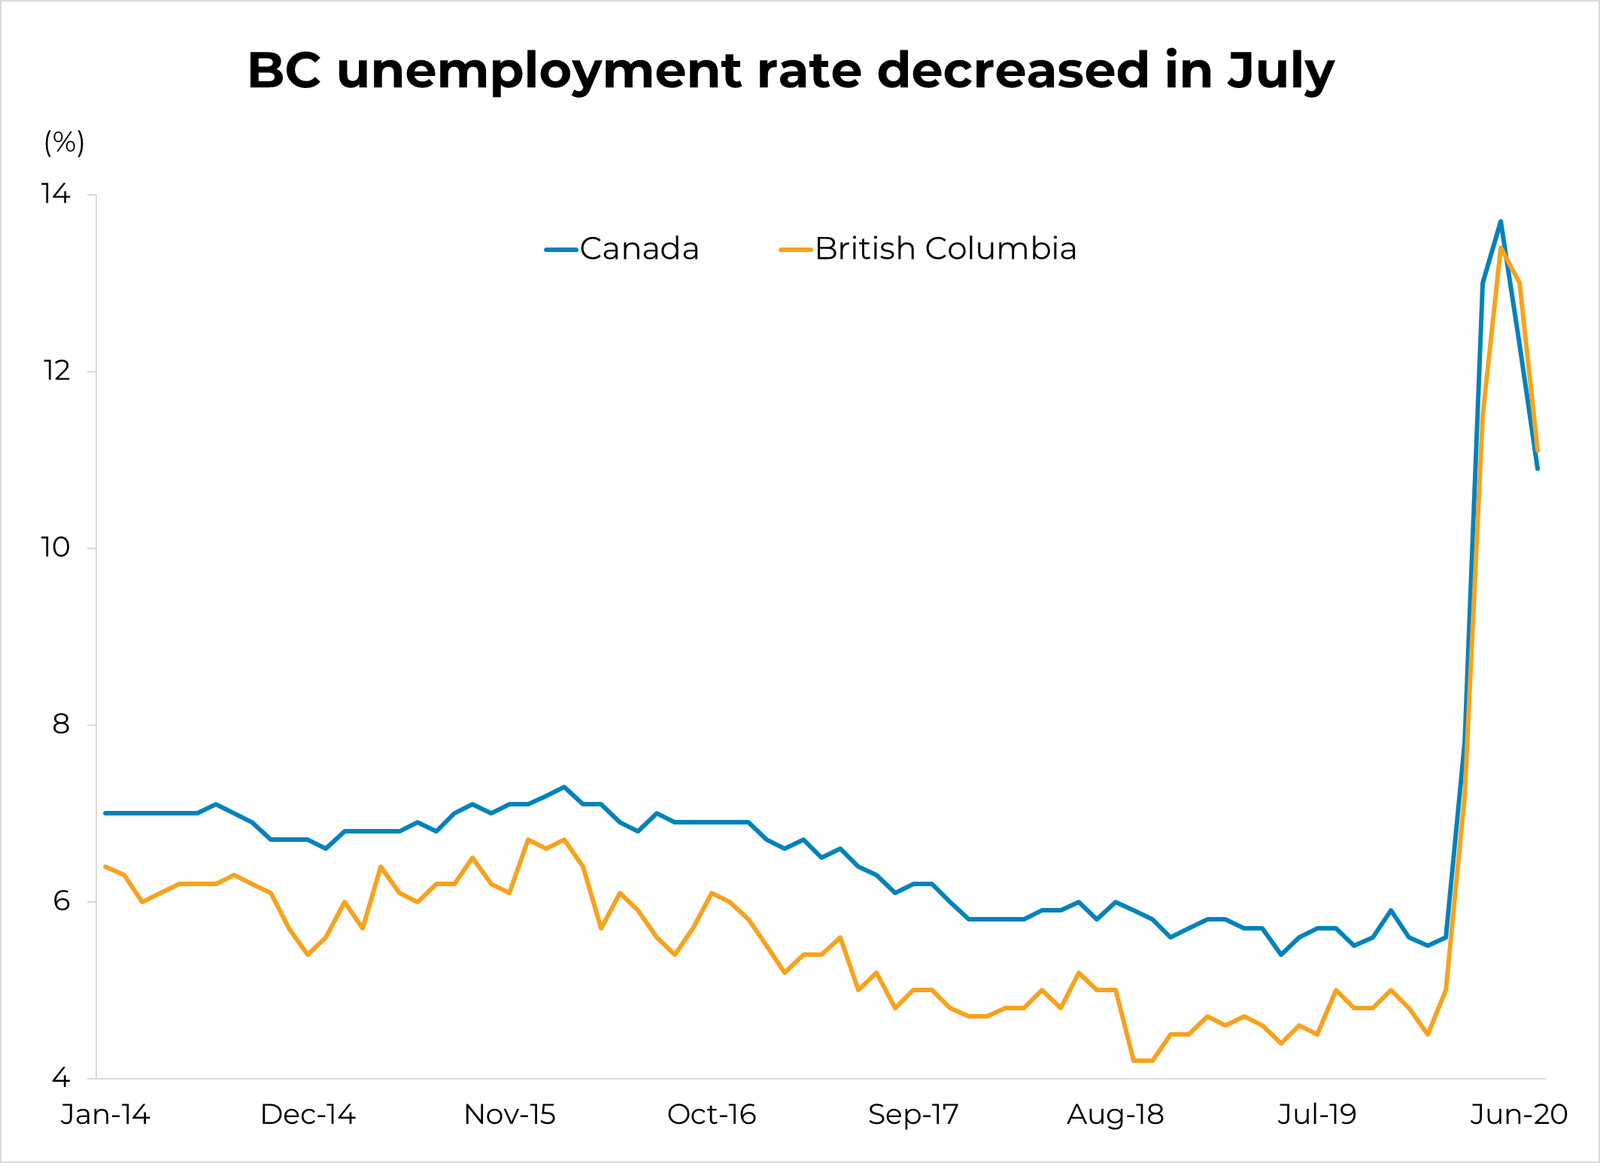 BC Unemployment Decreases in July